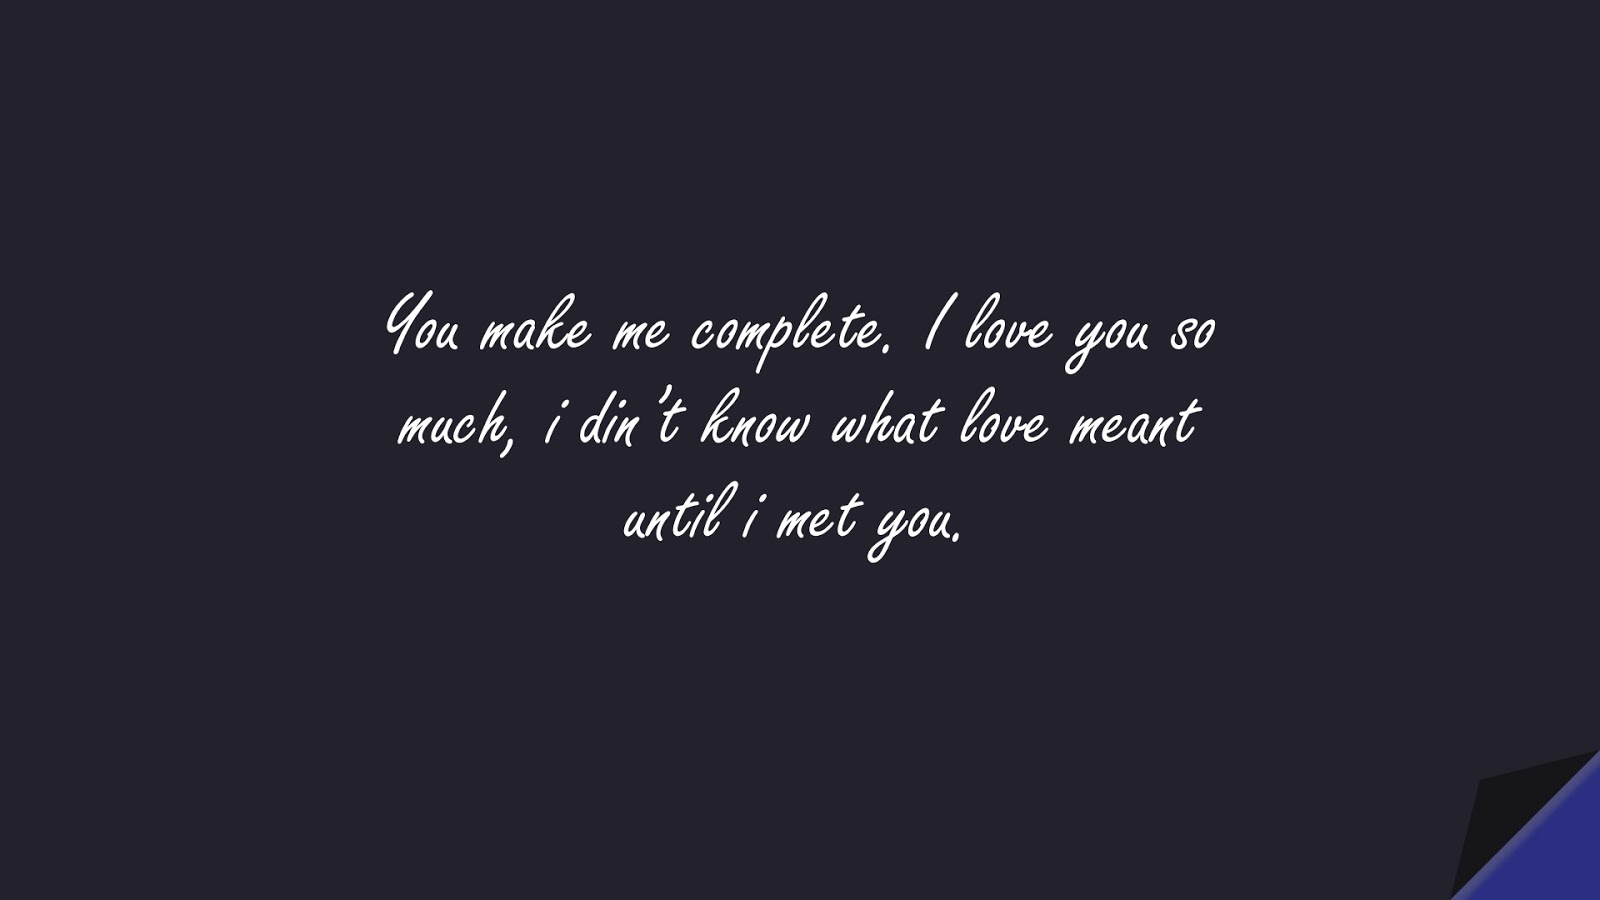 You make me complete. I love you so much, i din't know what love meant until i met you.FALSE